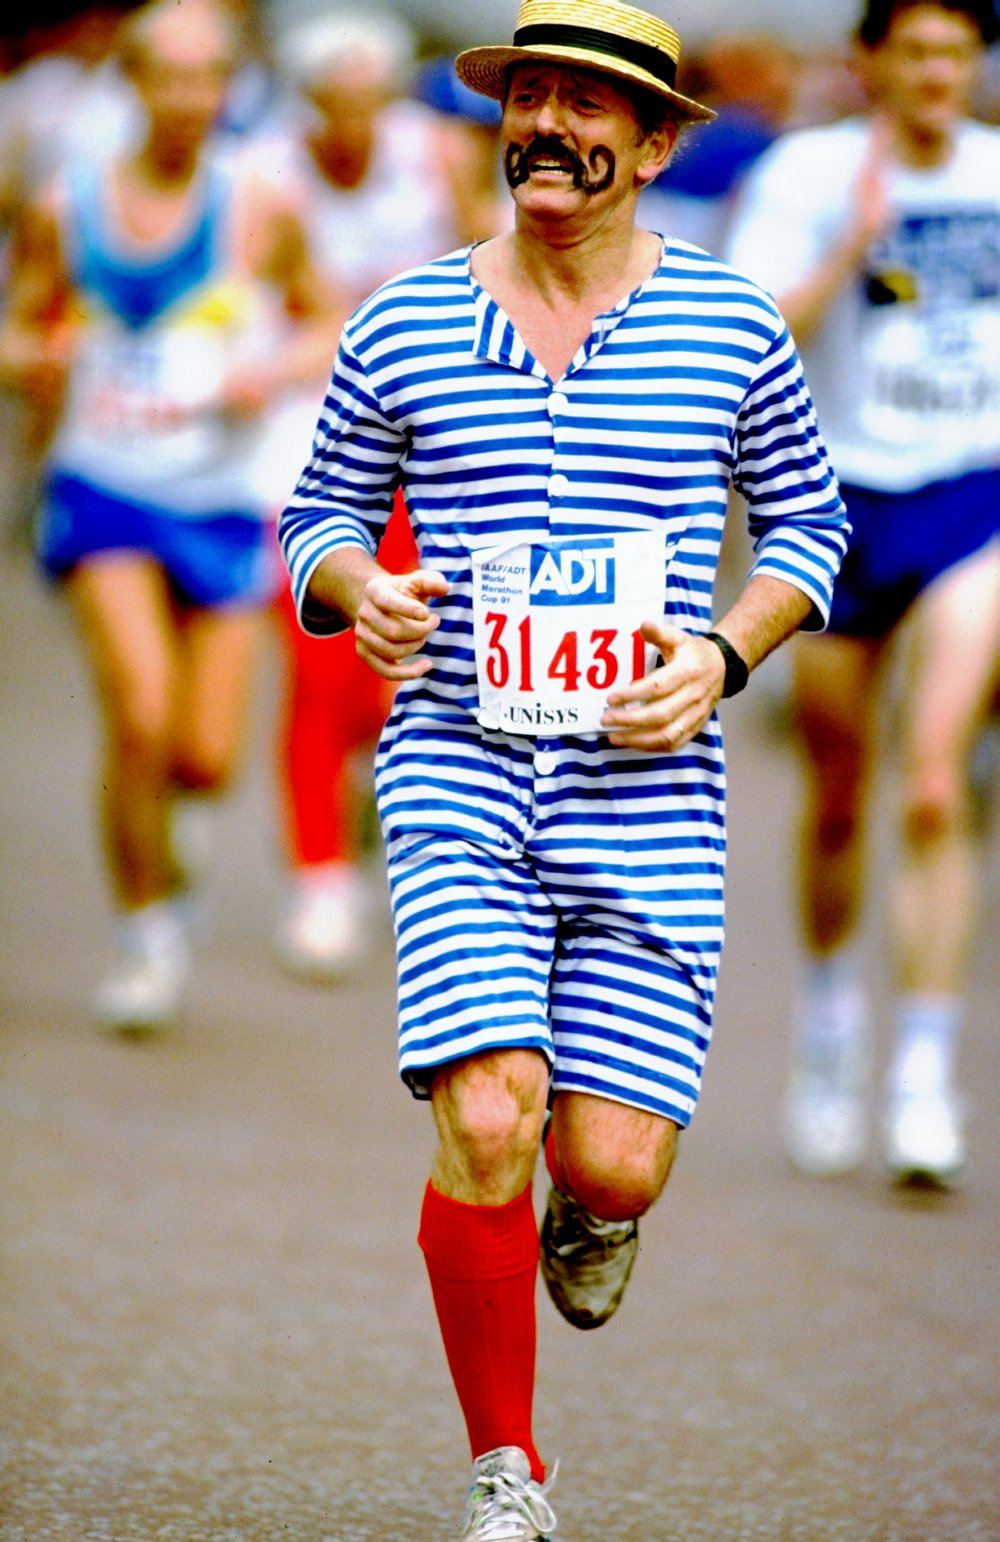 A fun runner in fancy dress